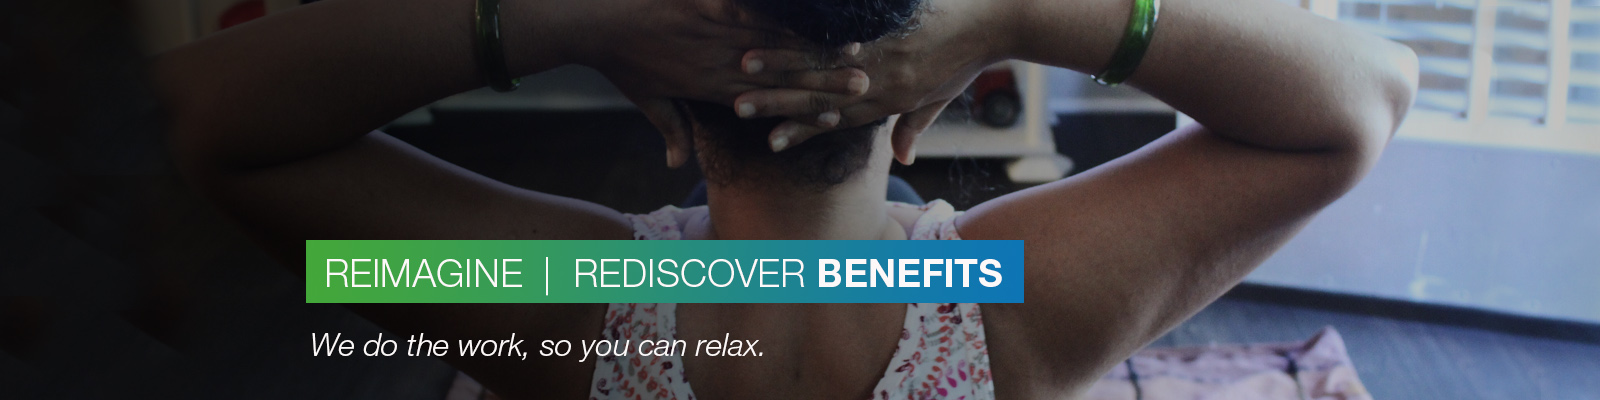 REIMAGINE | REDISCOVER BENEFITS: We do the work, so you can relax.